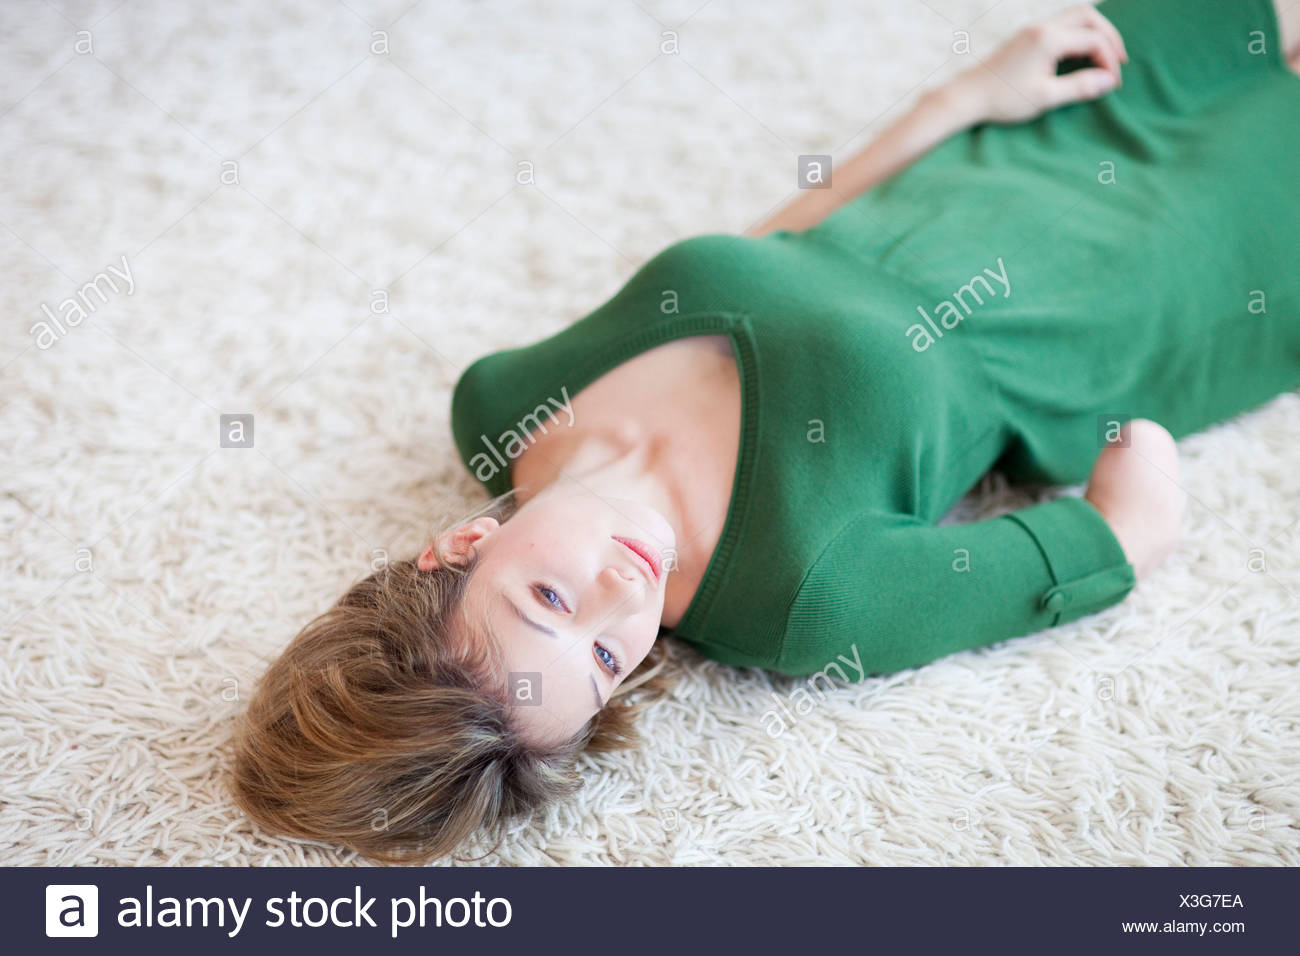 Young woman with amputee arm lying on carpet, high angle view - Stock Image